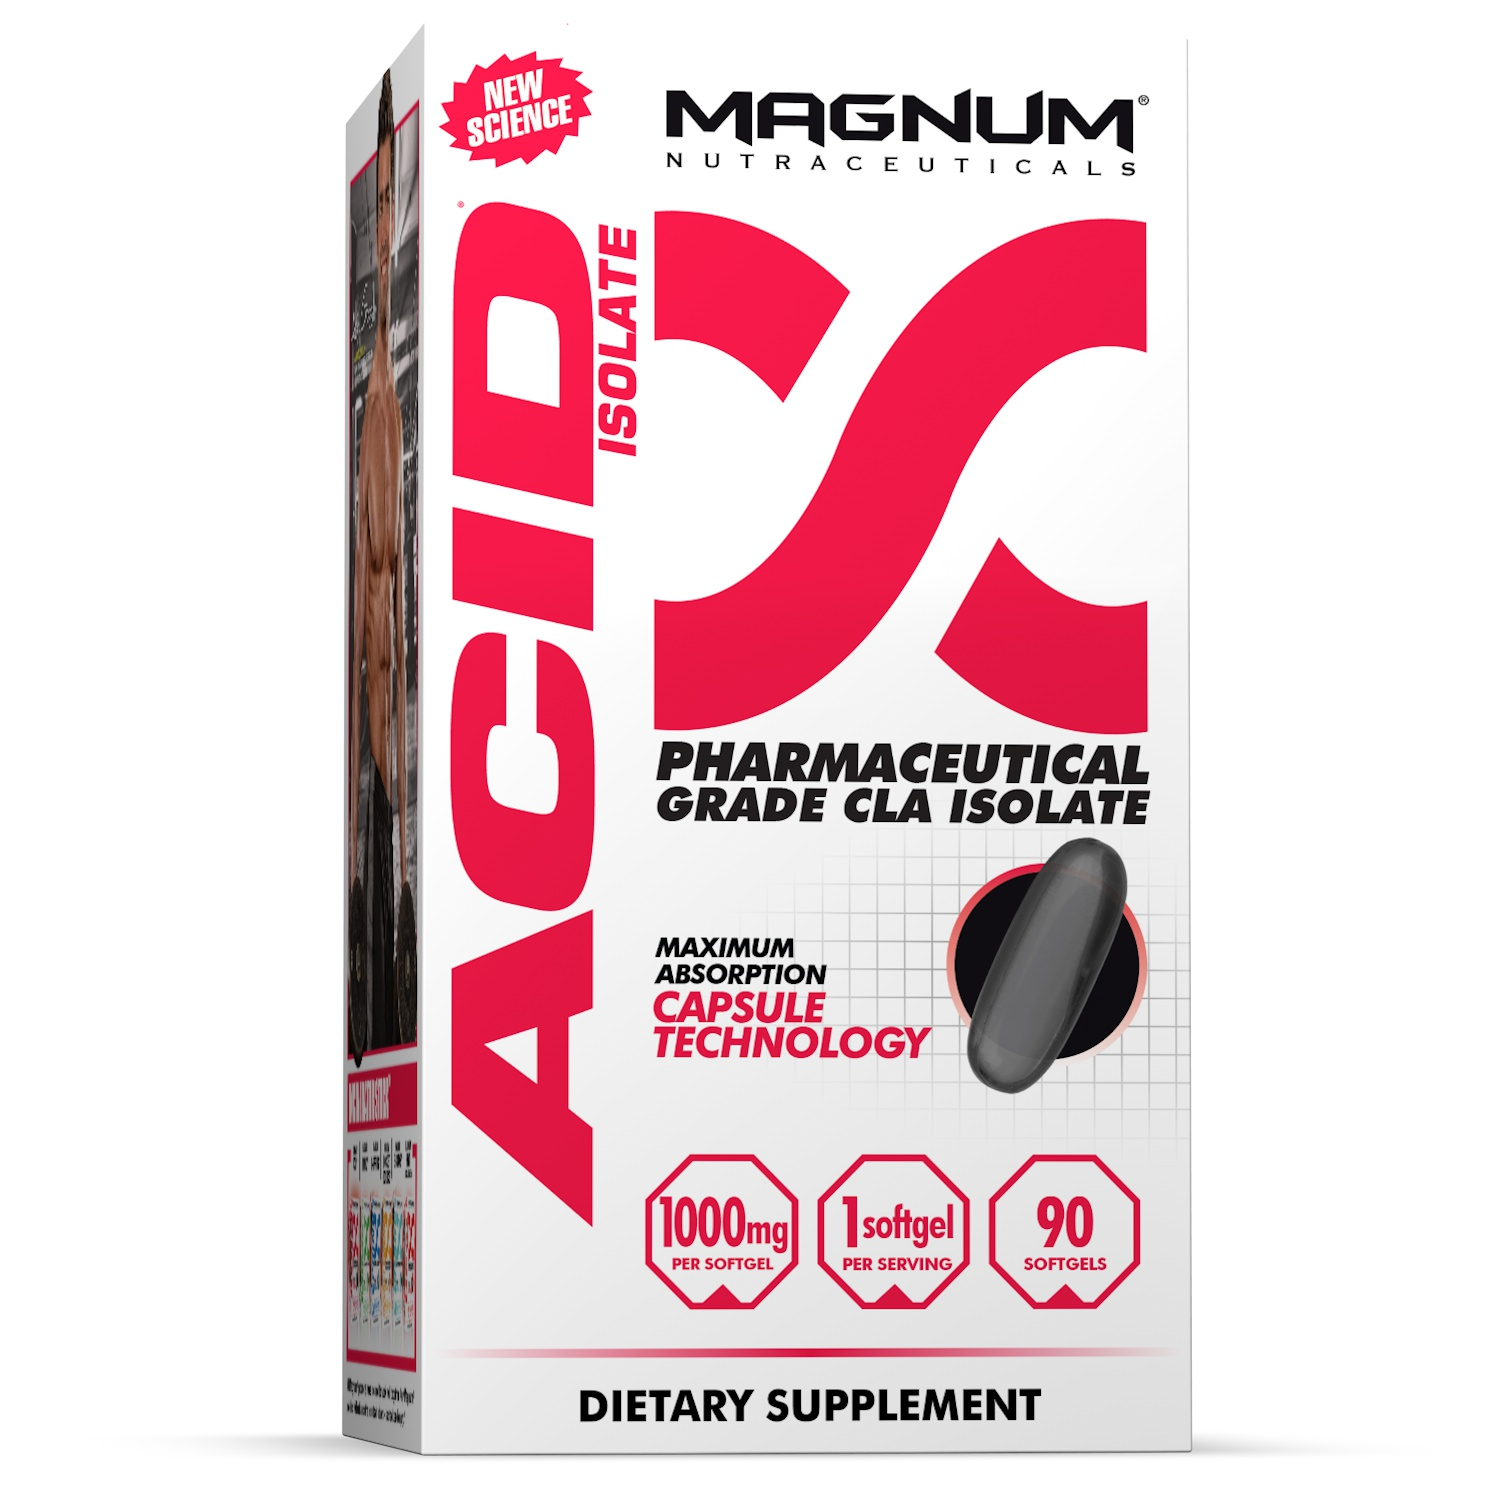 Magnum Nutraceuticals Acid Fat Burner Pharmaceutical Grade CLA Isolate - 90 Softgels | Fat Mobilizer | Metabolic